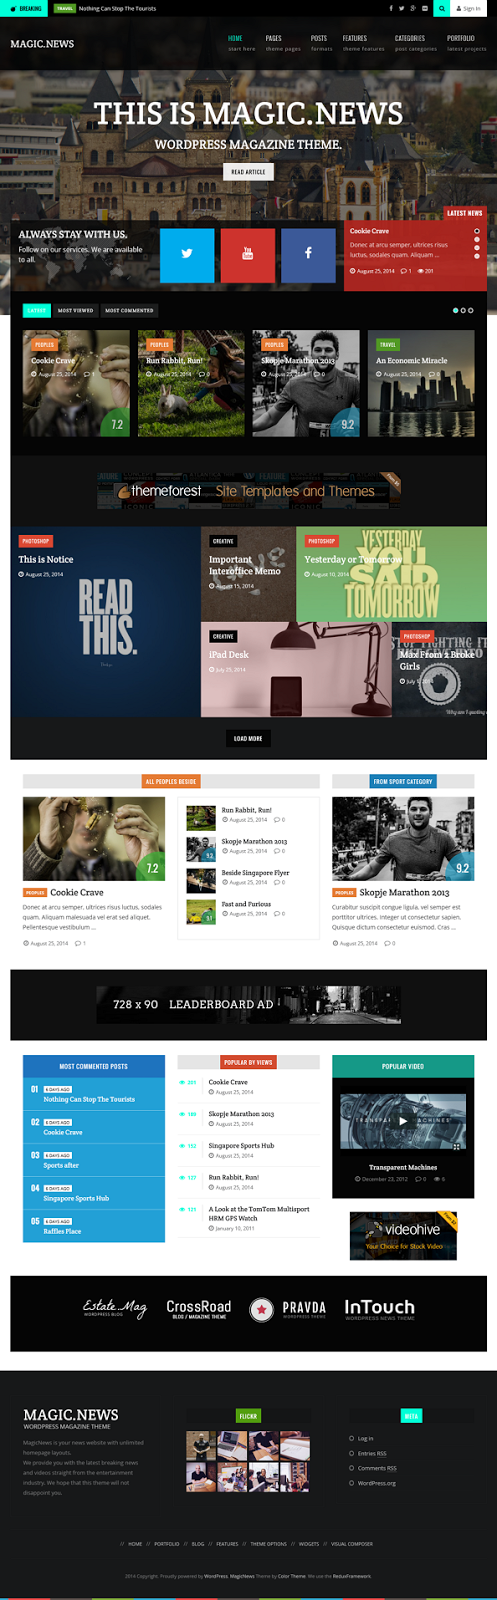 MagicNews Responsive WordPress Magazine Theme